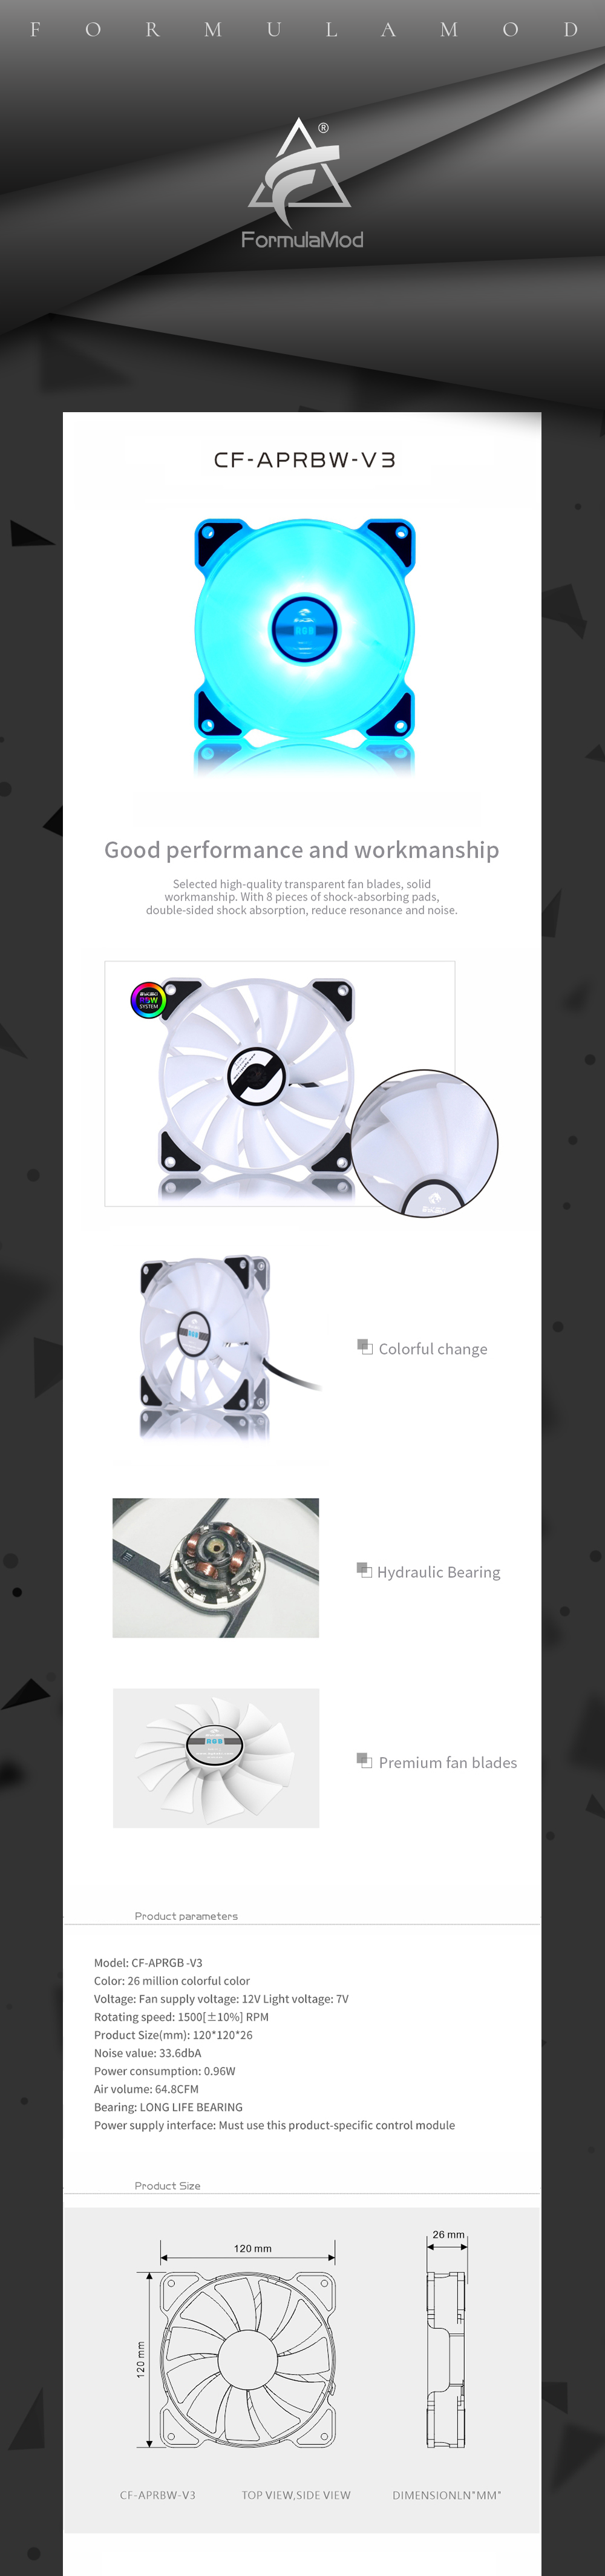 Bykski RGB 12v Computer Fan 120mm Mute Water Cooling Fan For PC Case 120/240/480 Radiator Colorful Cooler For PC Cooling CF-APRGB-V3